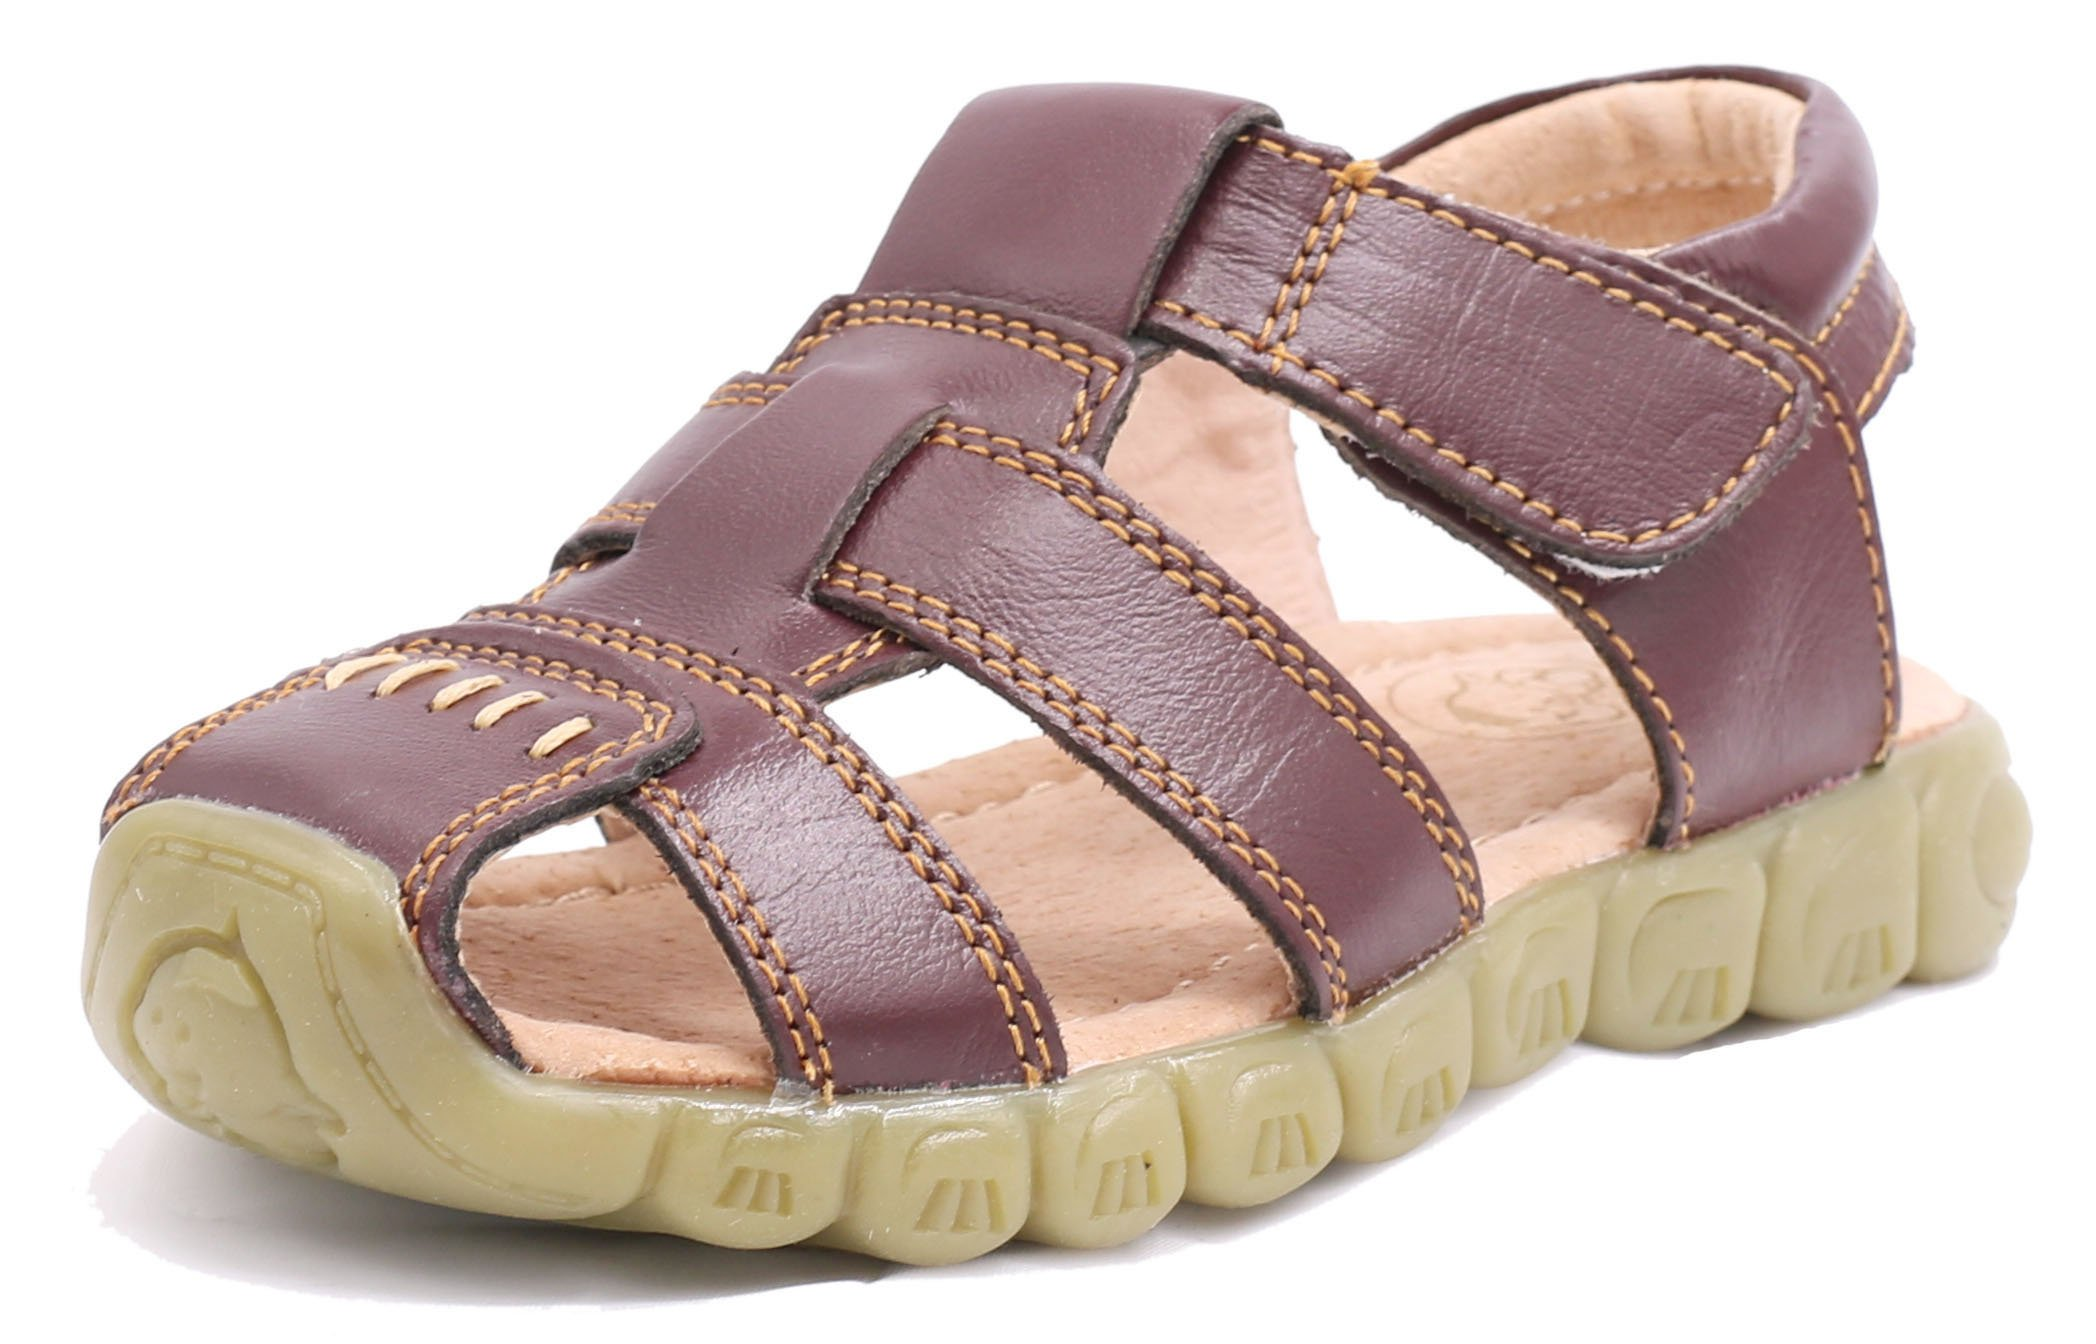 Femizee Closed-Toe Casual Outdoor Sandals Boys Girls(Toddler/Little Kid/Big Kid),Brown,1203 CN23